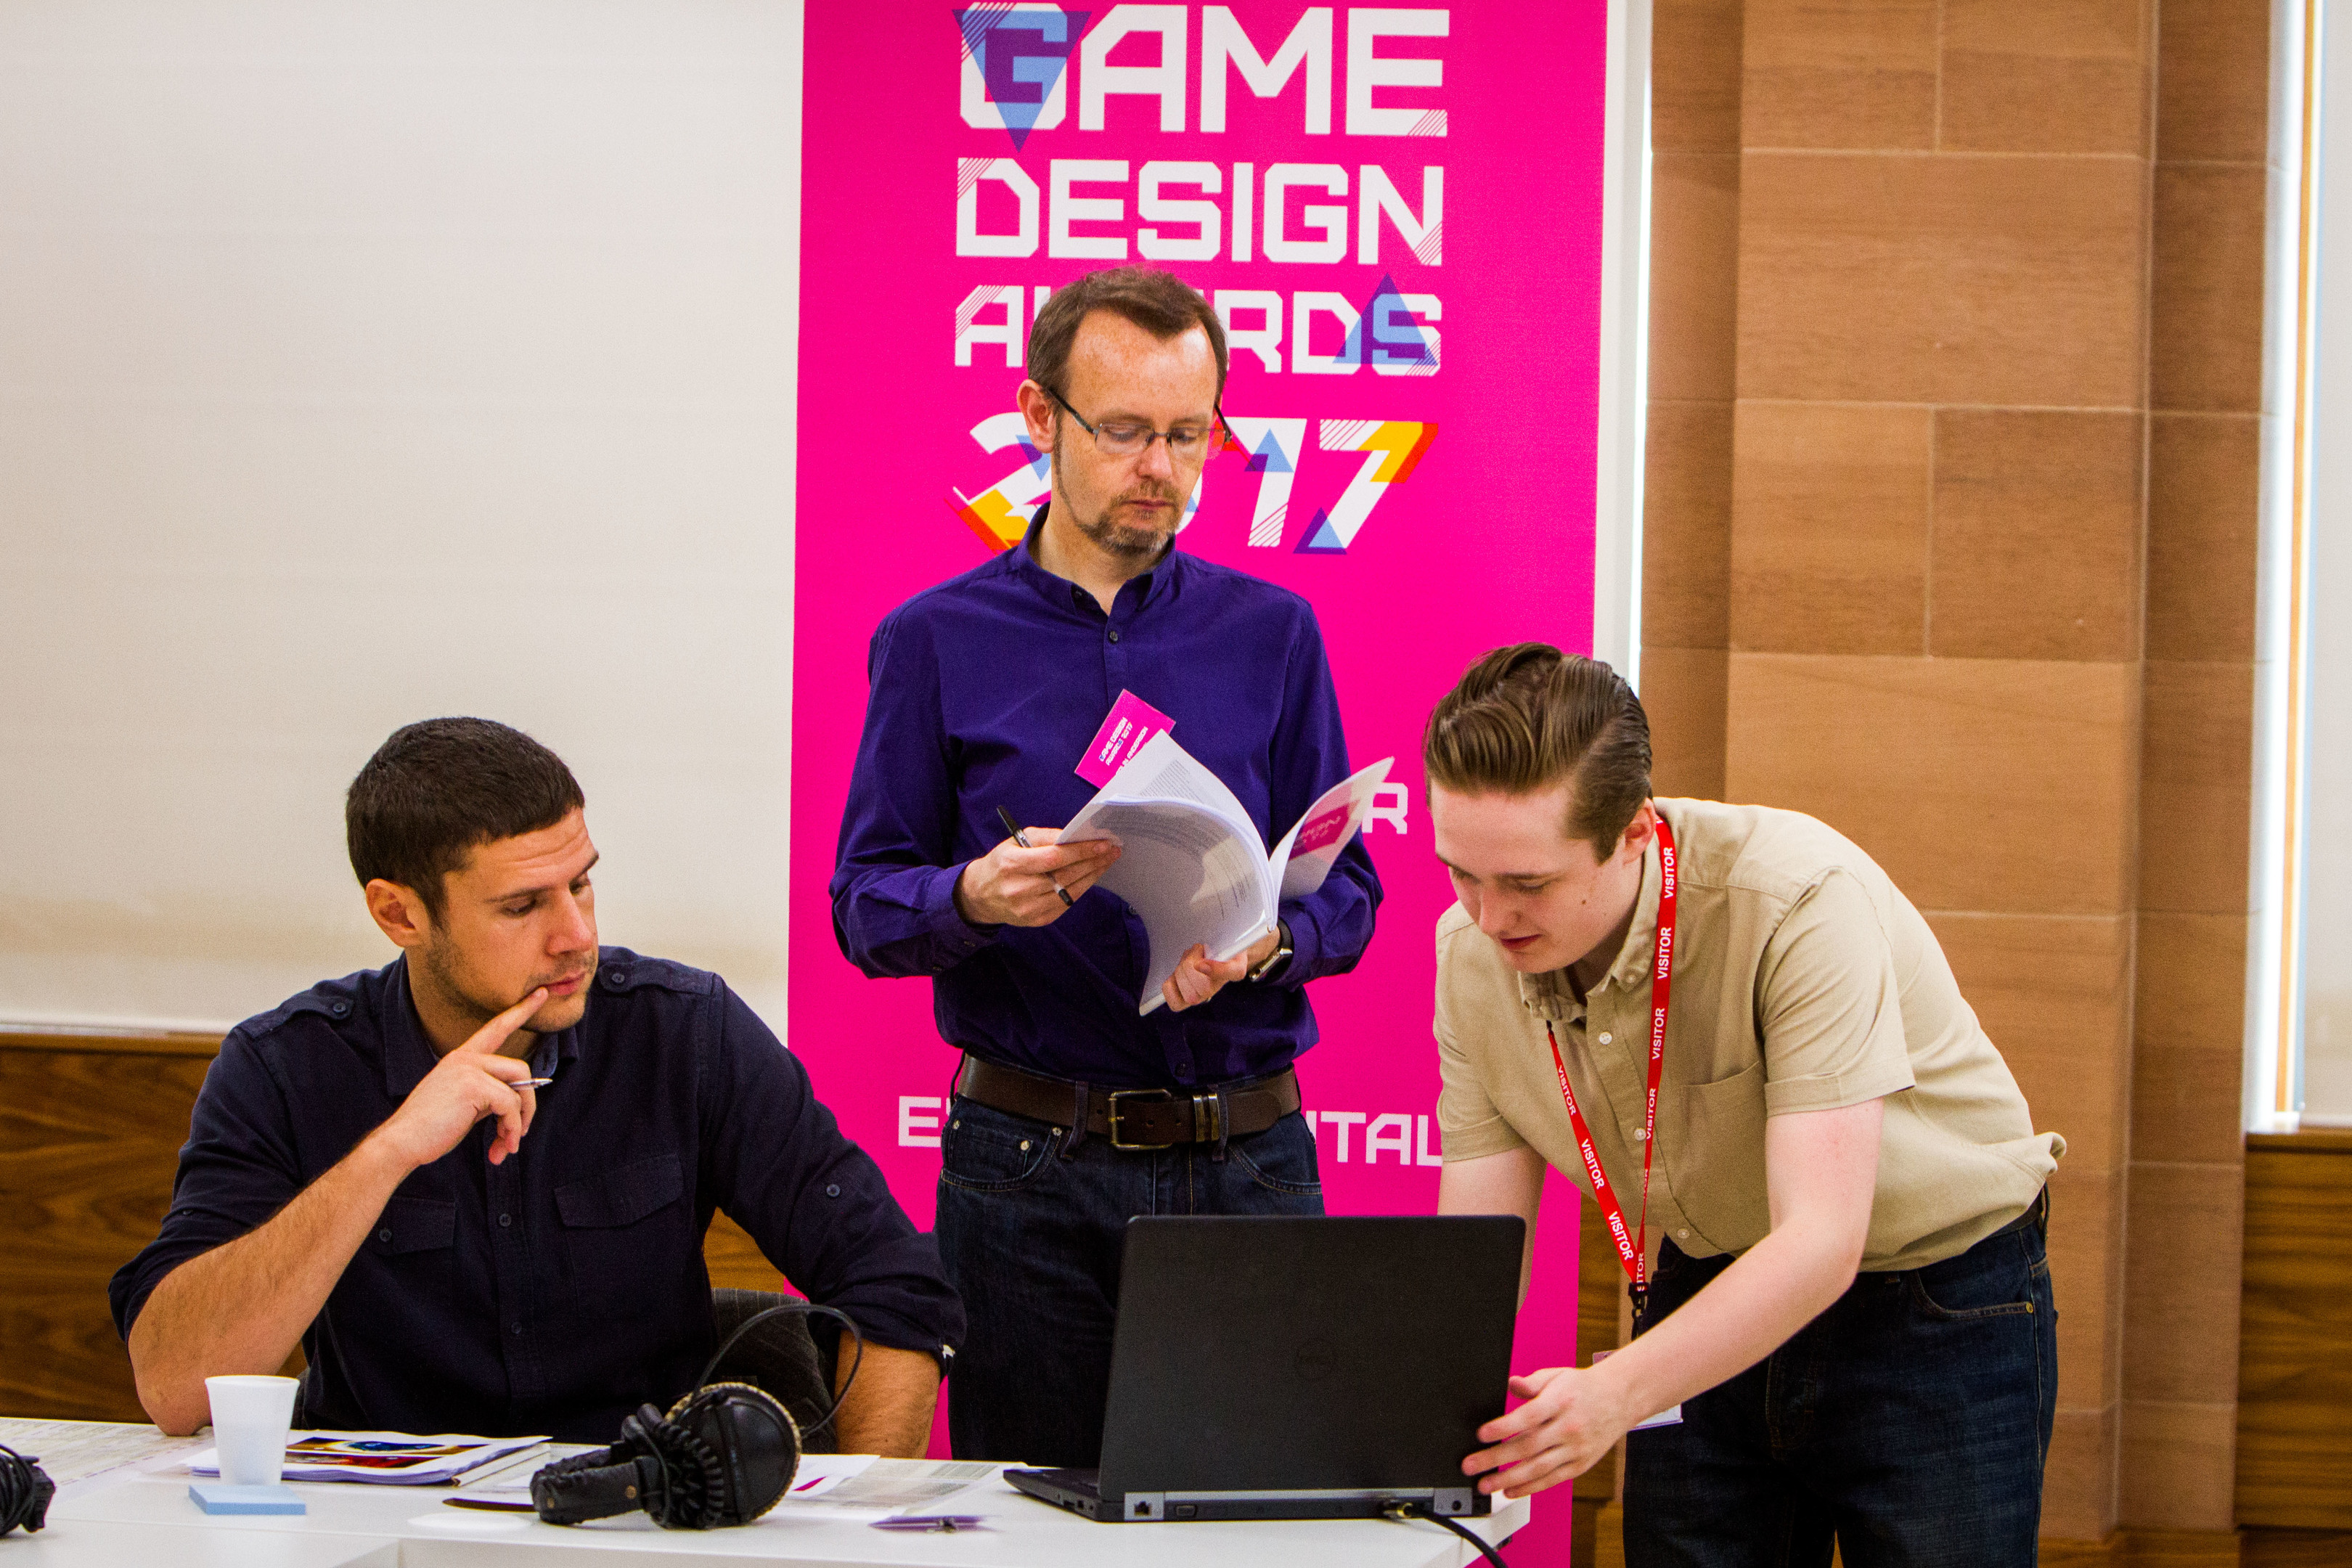 Judging for the Game Design Awards taking place in July. The winners will be revealed on Thursday evening.